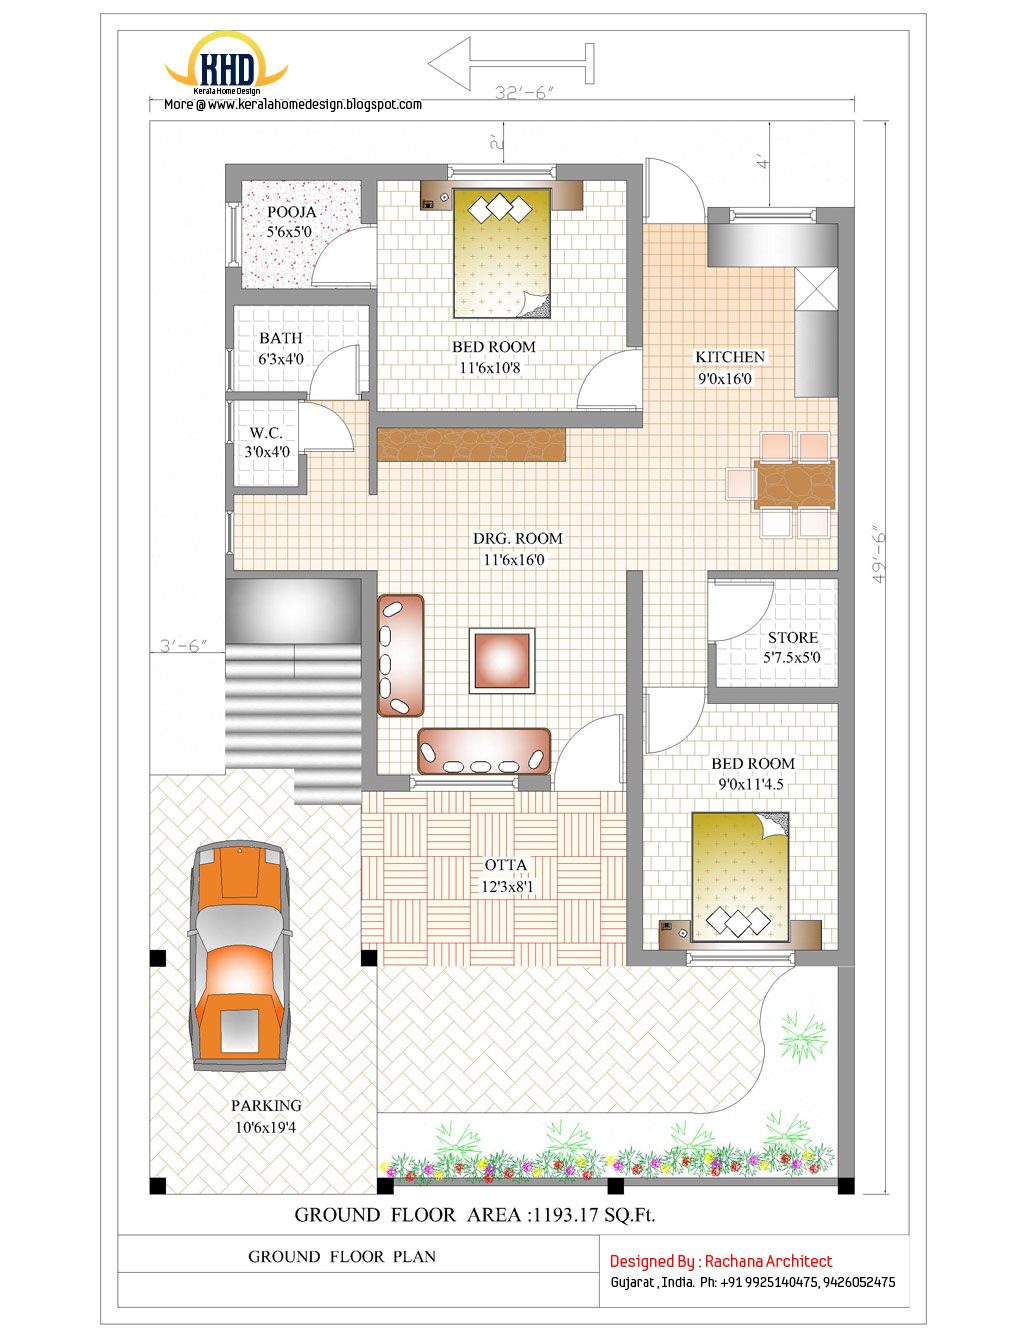 Contemporary india house plan 2185 sq ft indian home for Small house design plans in india image